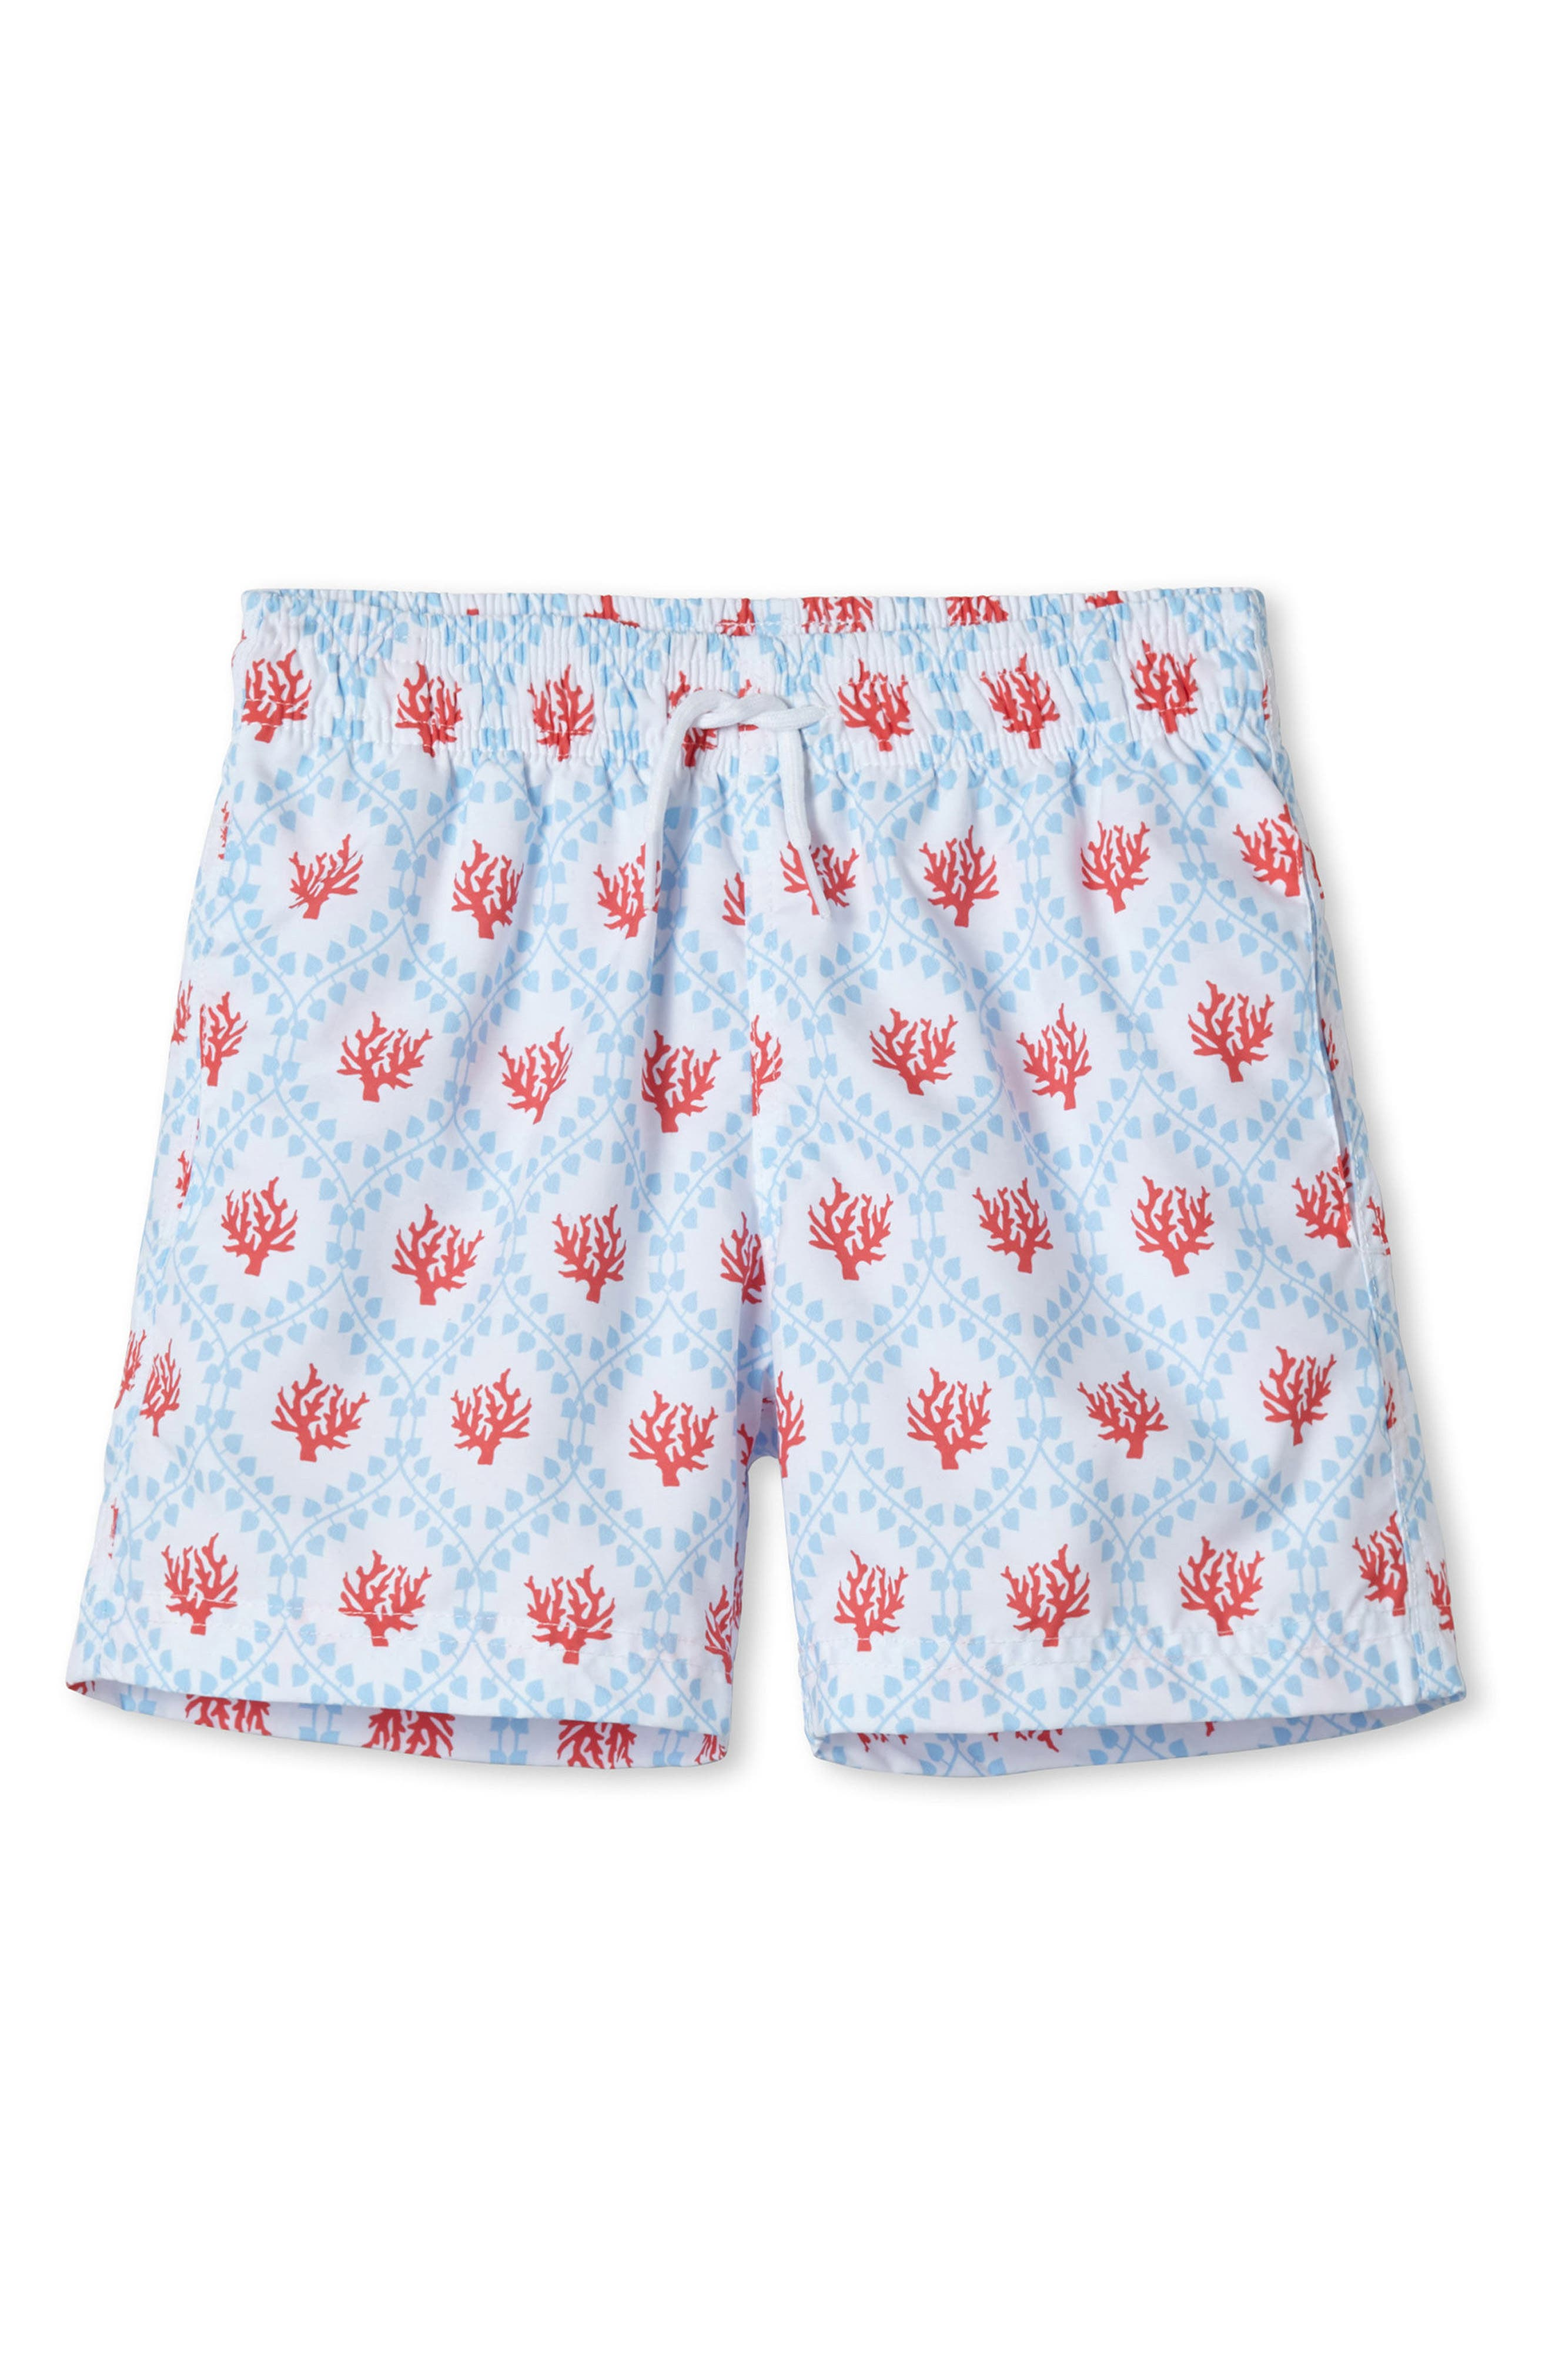 Red Coral Swim Trunks,                         Main,                         color, 400